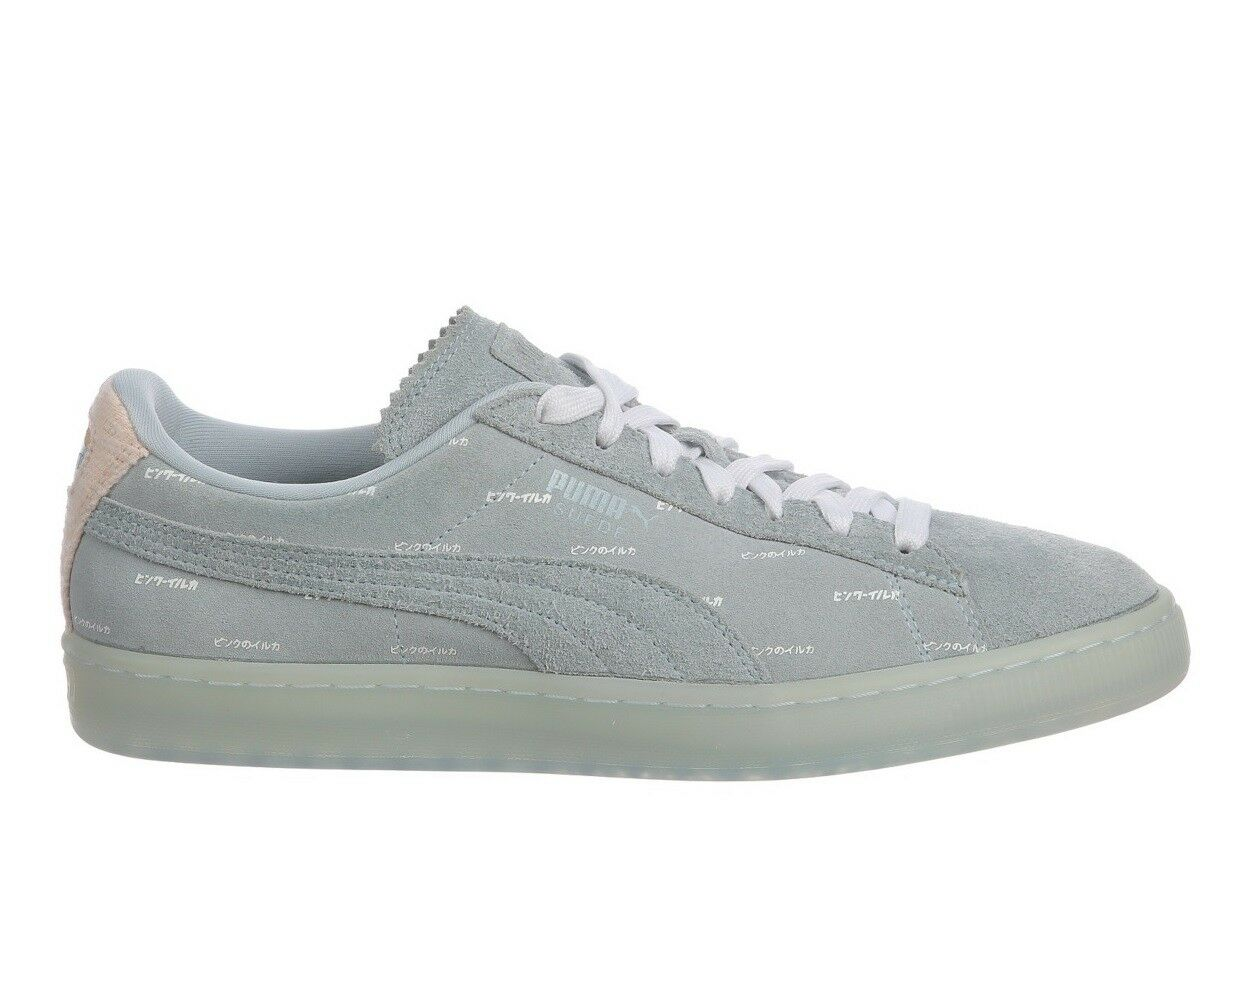 Puma Suede Classic V2 Rose Dolphin Homme 365031-02 Ether Cream Chaussures